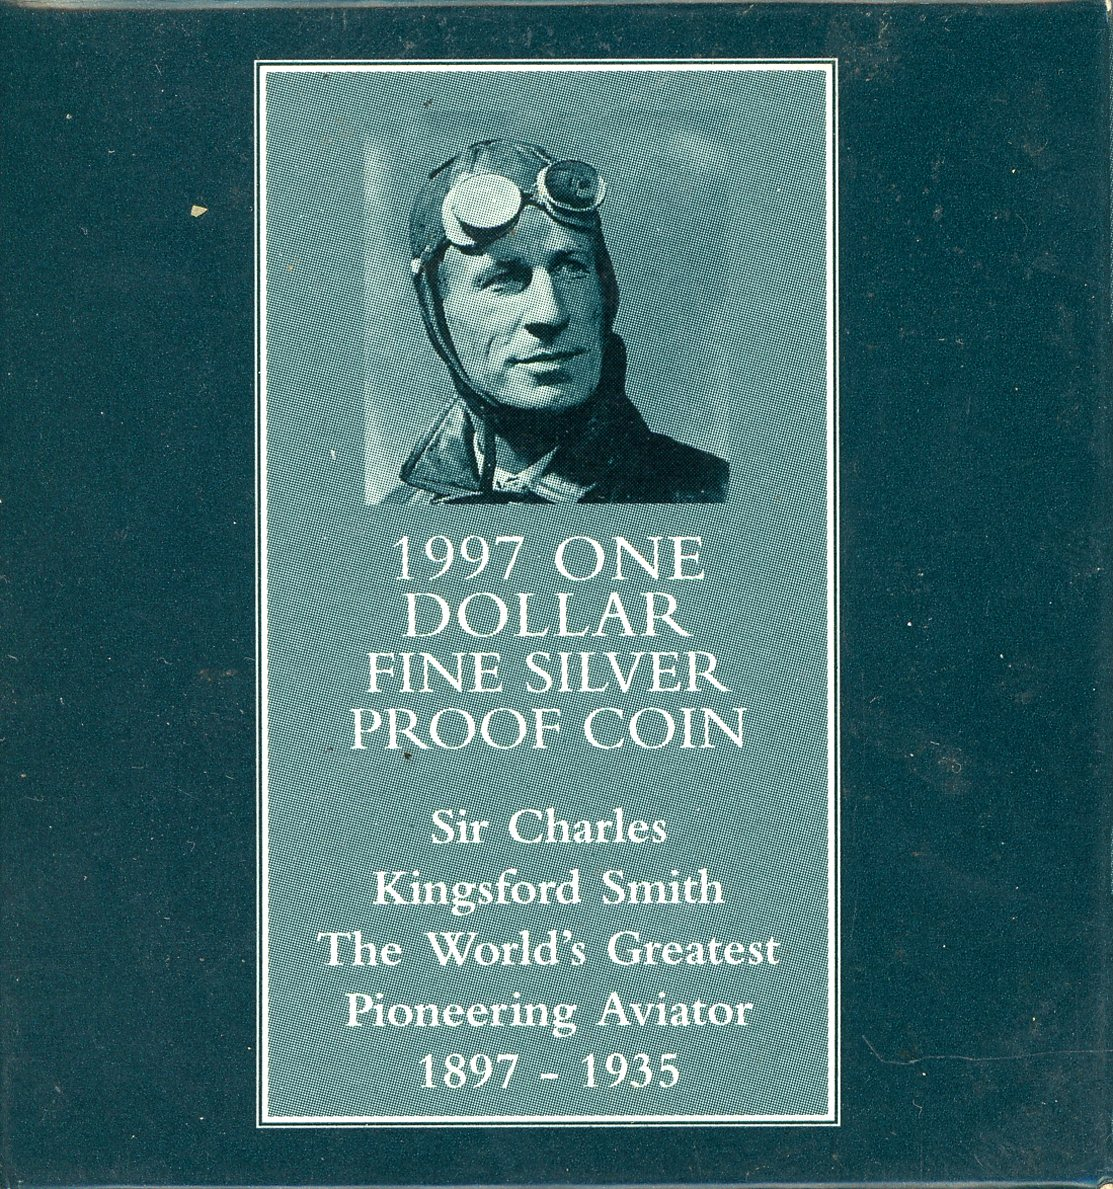 Thumbnail for 1997 One Dollar Silver Proof - Sir Charles Kingsford Smith